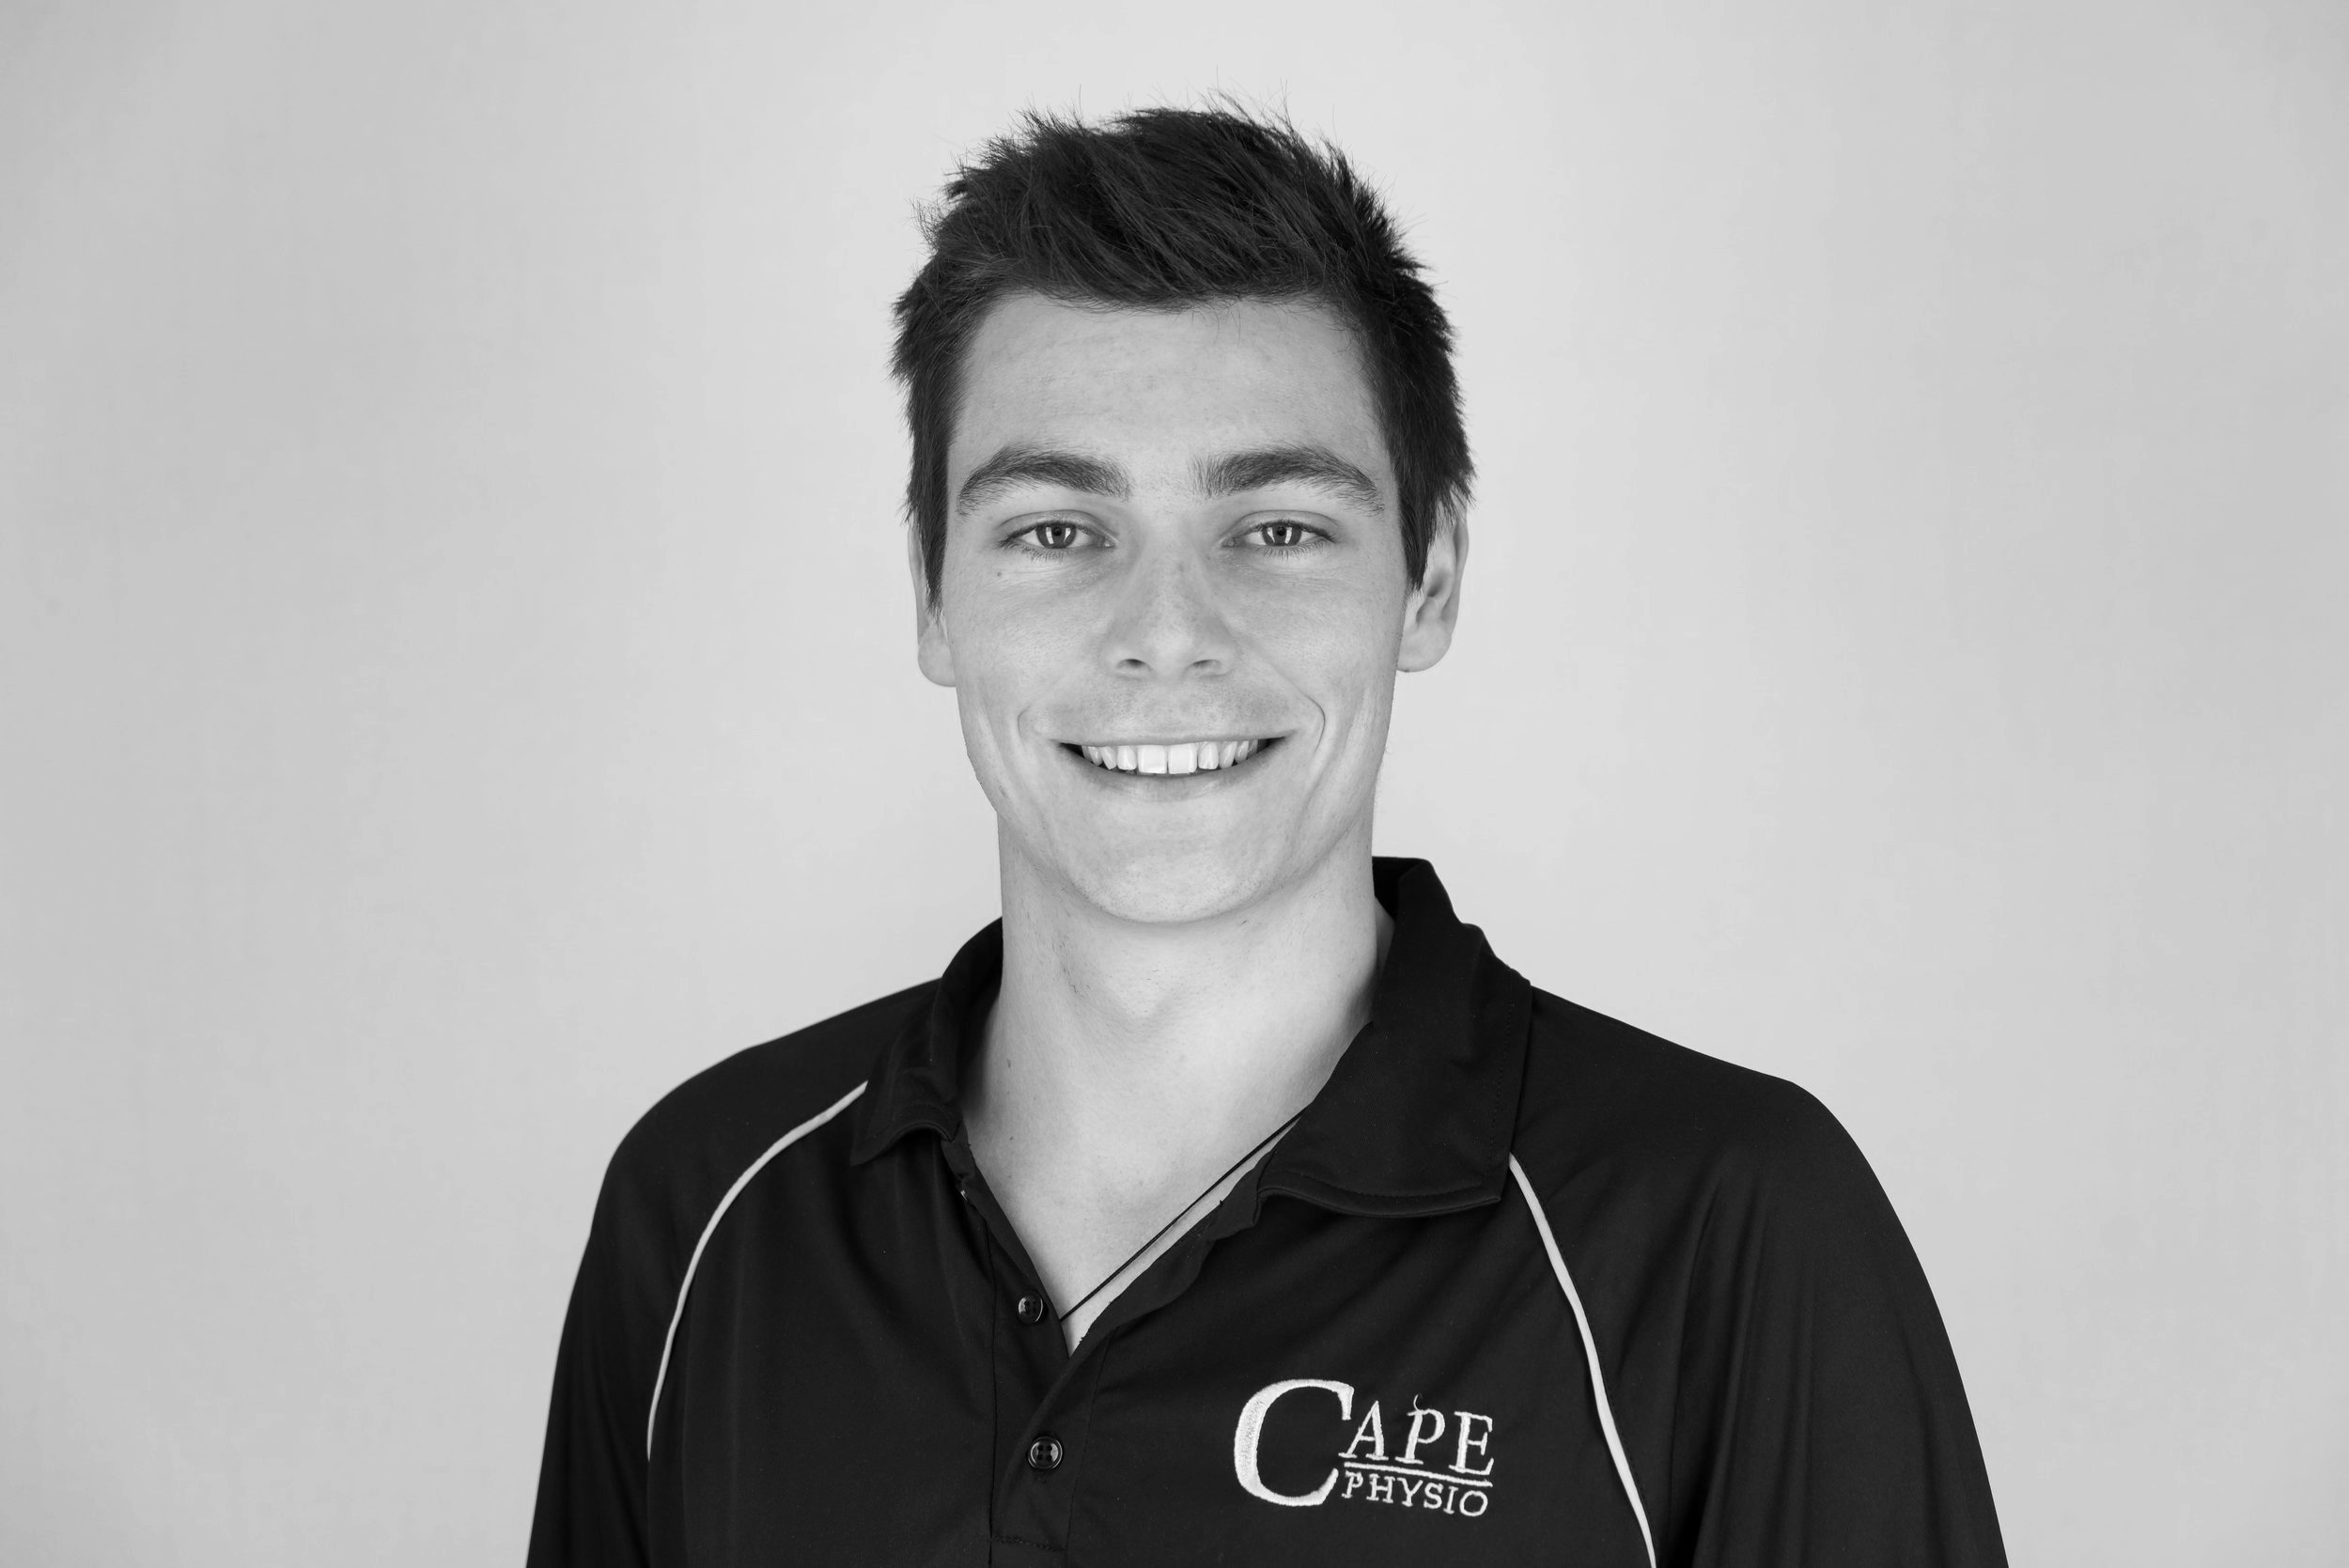 Jono Whitley - Physiotherapist   After graduating from AUT in late 2016, Jono moved down to the Hawkes Bay and started working for CAPE Physio. After spending two cricket seasons in the UK, he arrived back in October 2018 and is now based at the Havelock North Clinic. He keeps busy on the weekends being Physio for the Havelock North Rugby Club's Premier side.  Jono enjoys playing sport and spending time with family and friends.